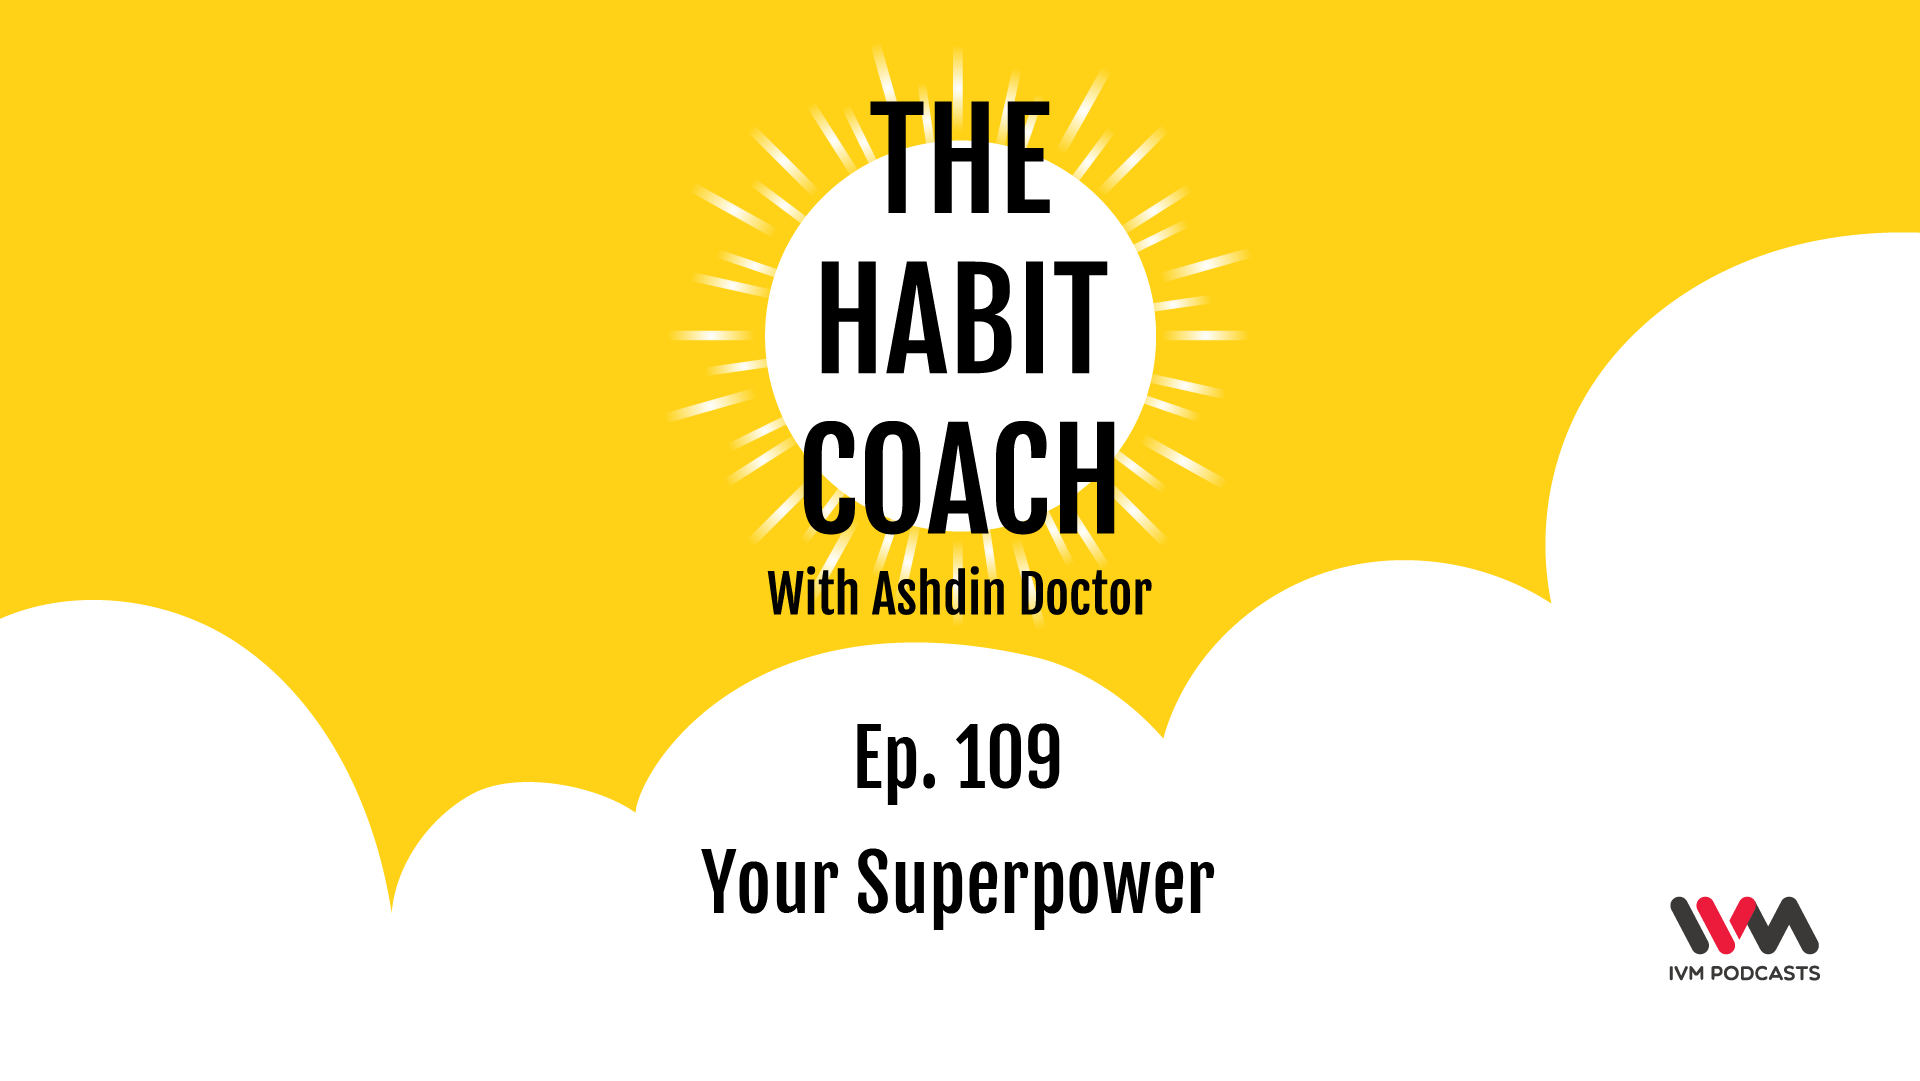 TheHabitCoachEpisode109.png